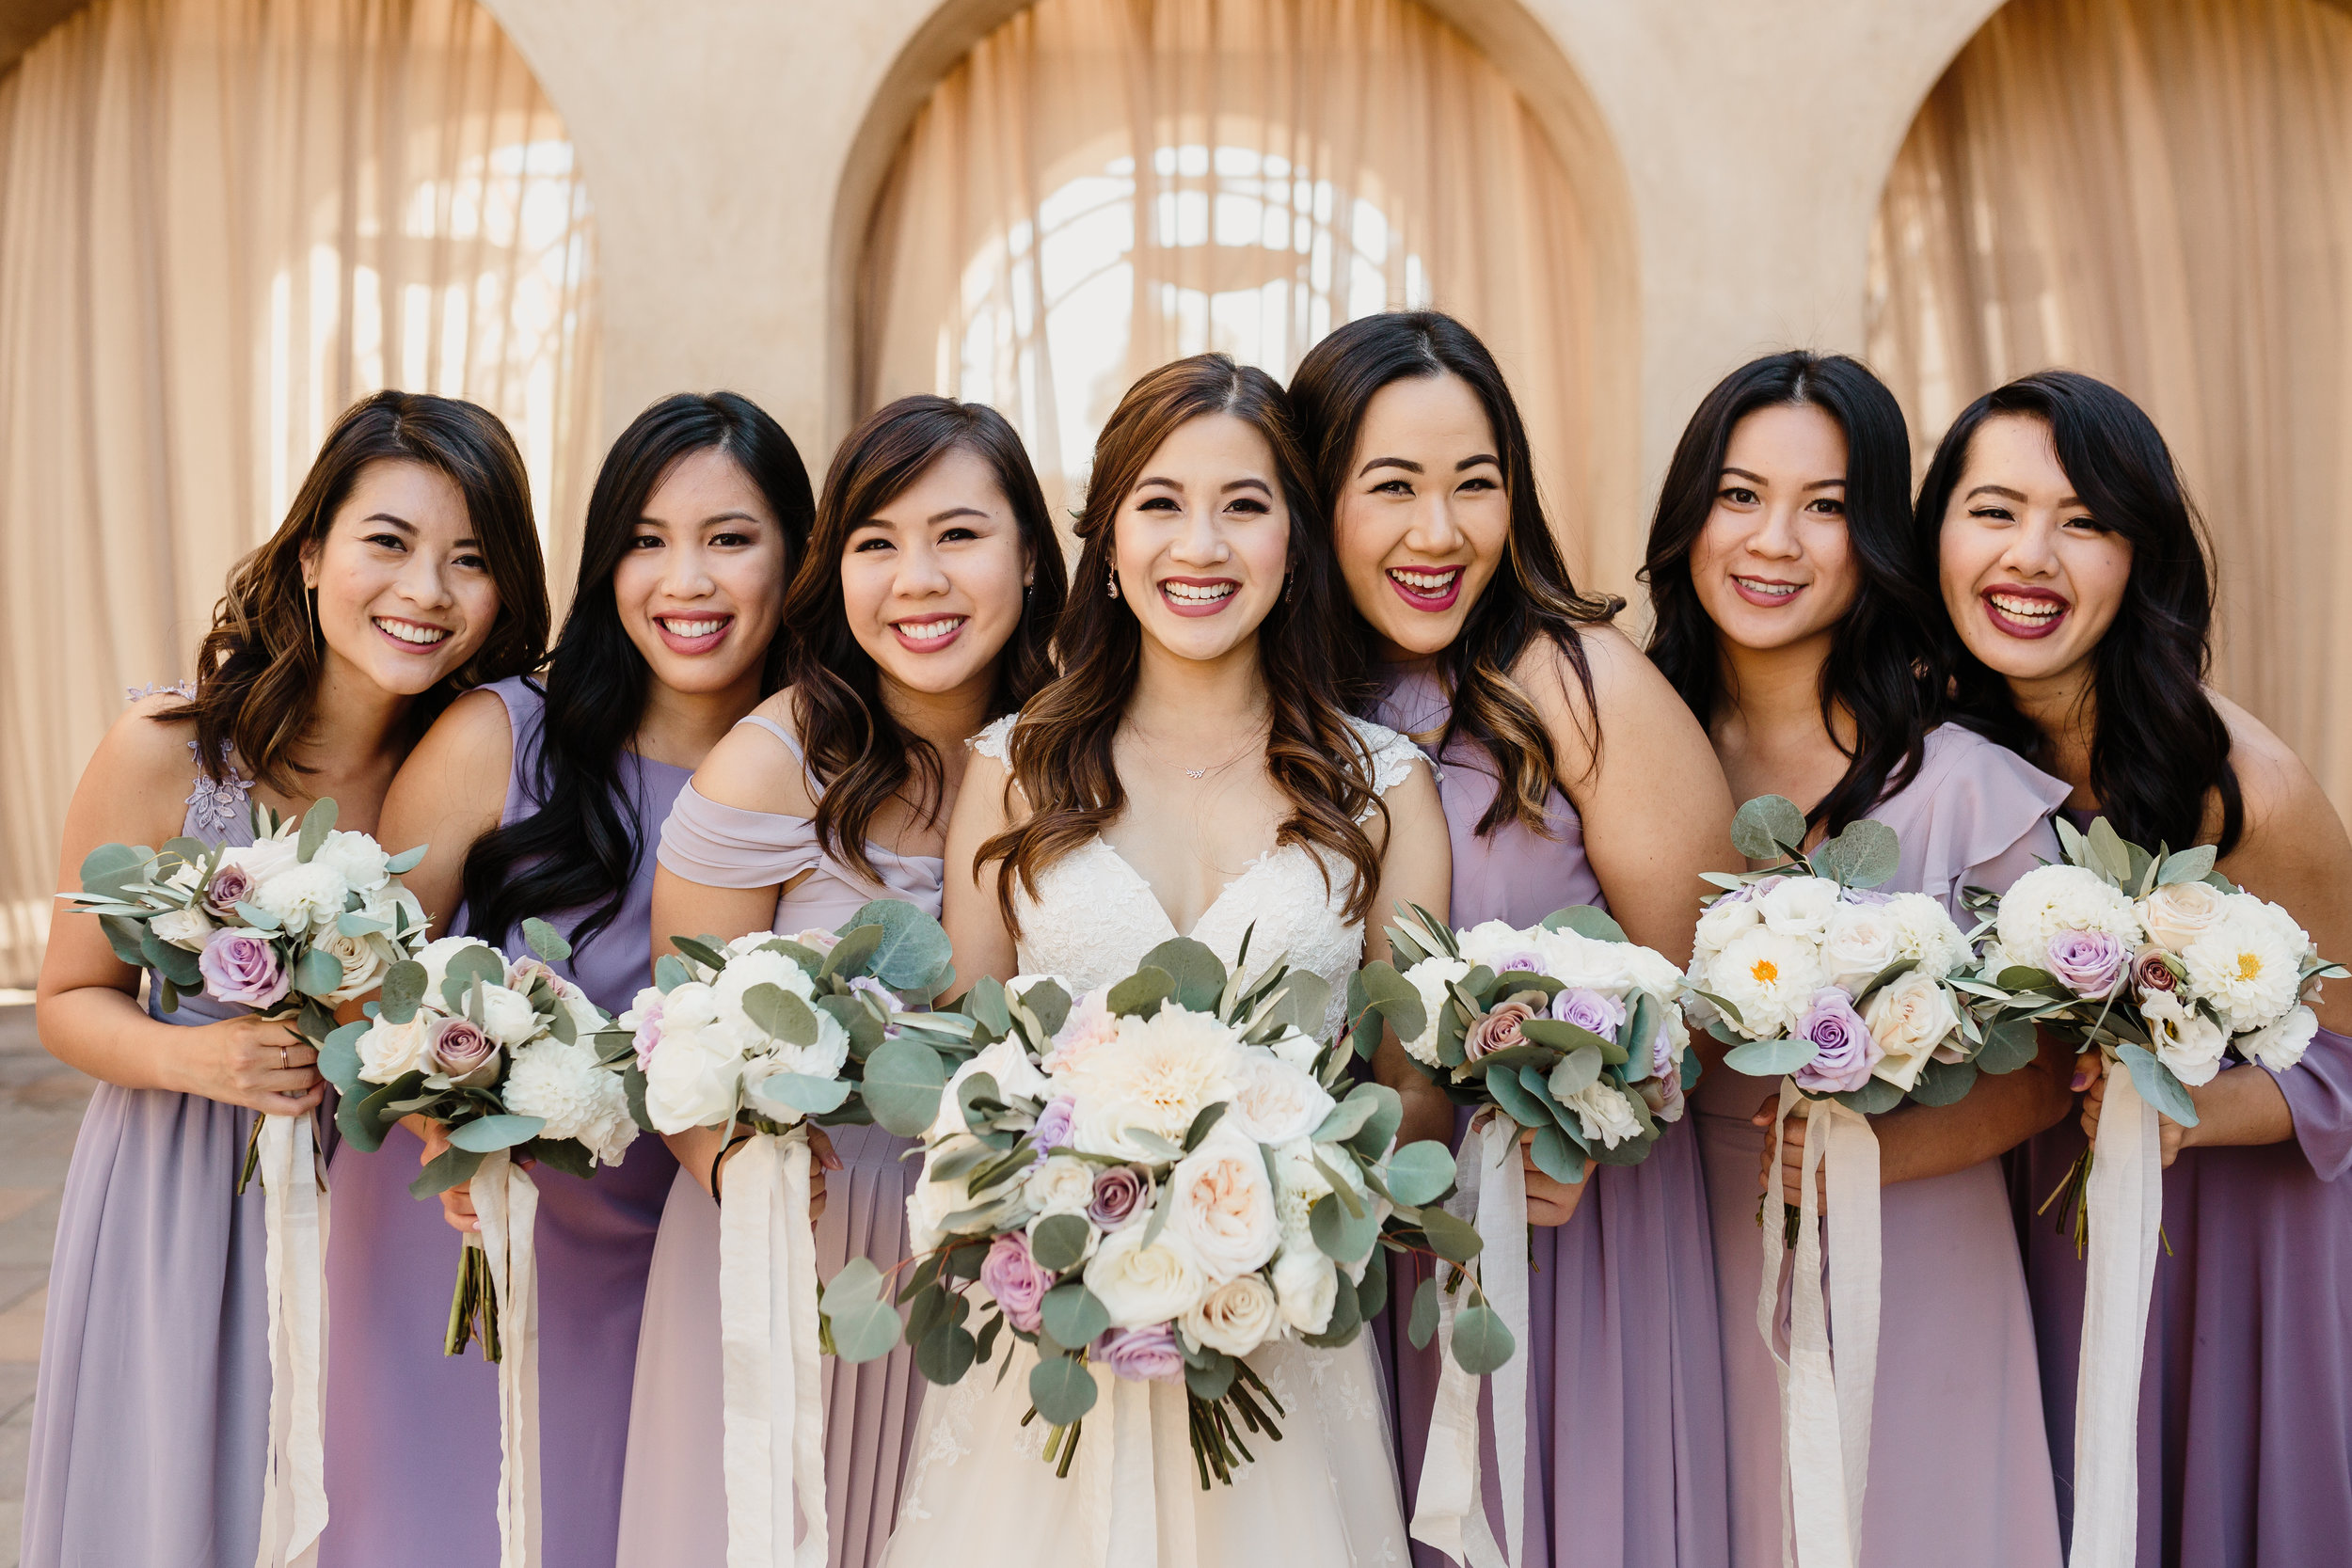 tangwedding-bridesmaids_57.JPG